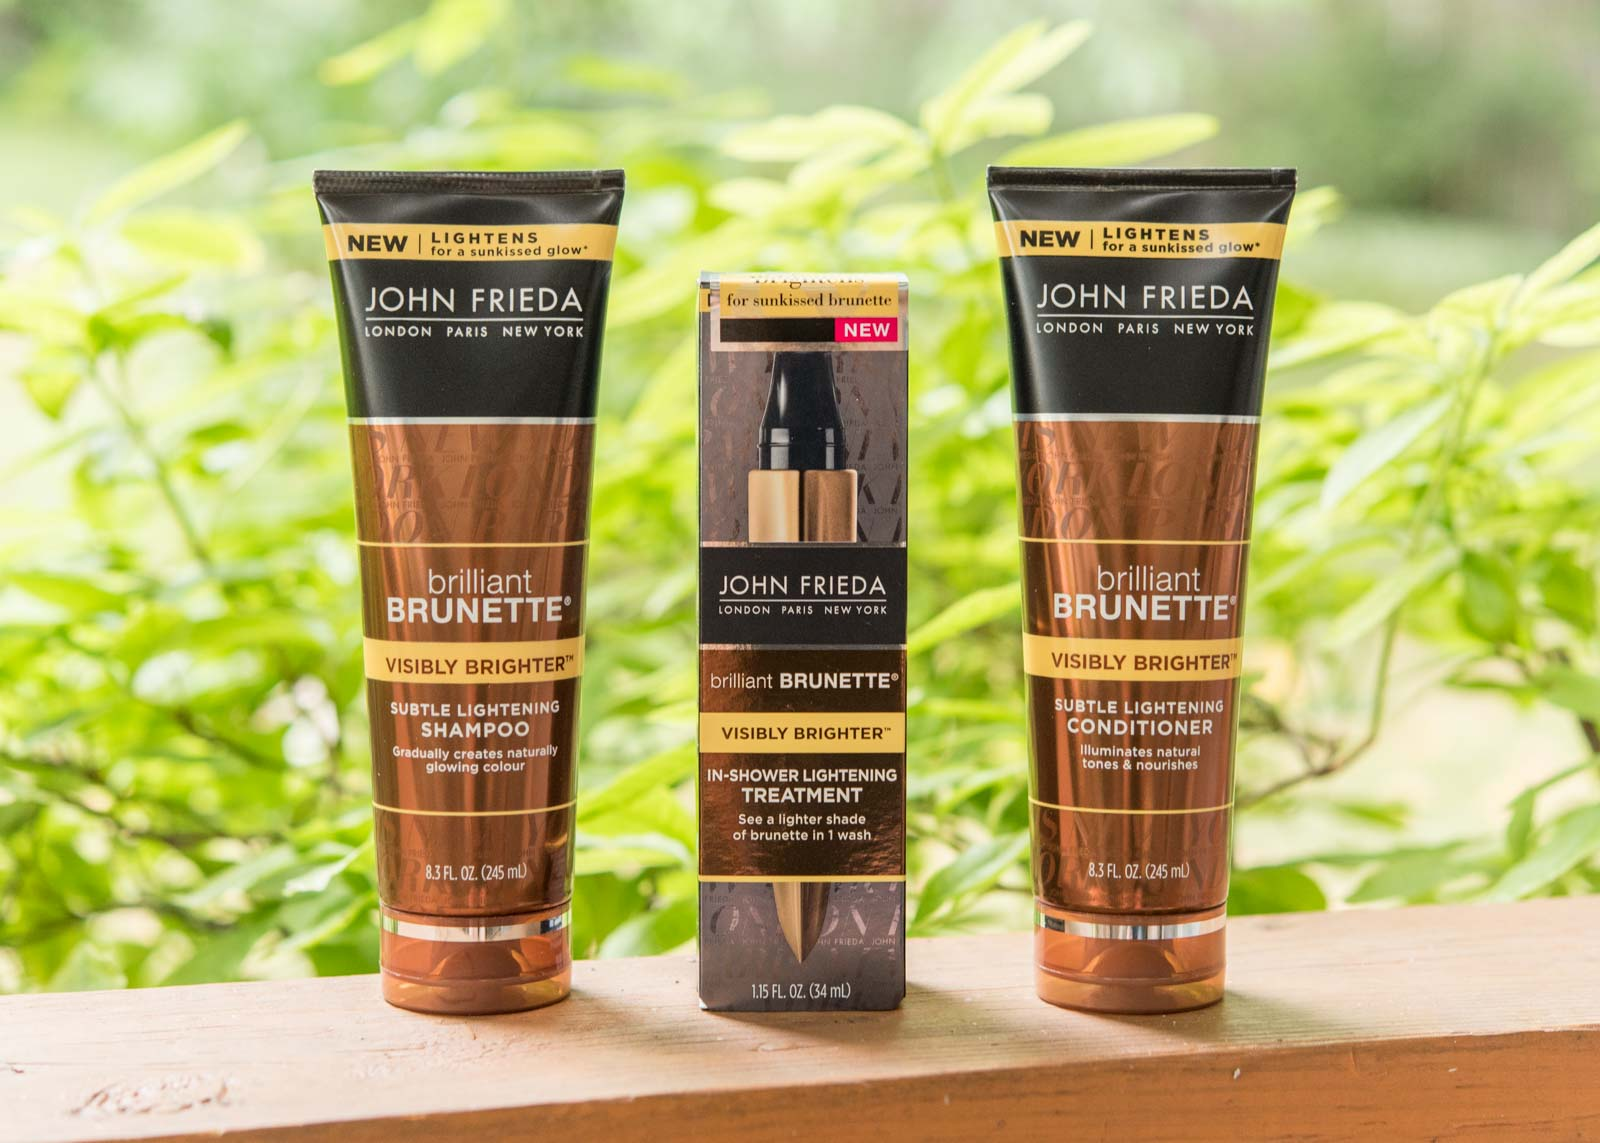 John Frieda® Brilliant Brunette® Visibly Brighter™ Shampoo, Conditioner, and Treatment